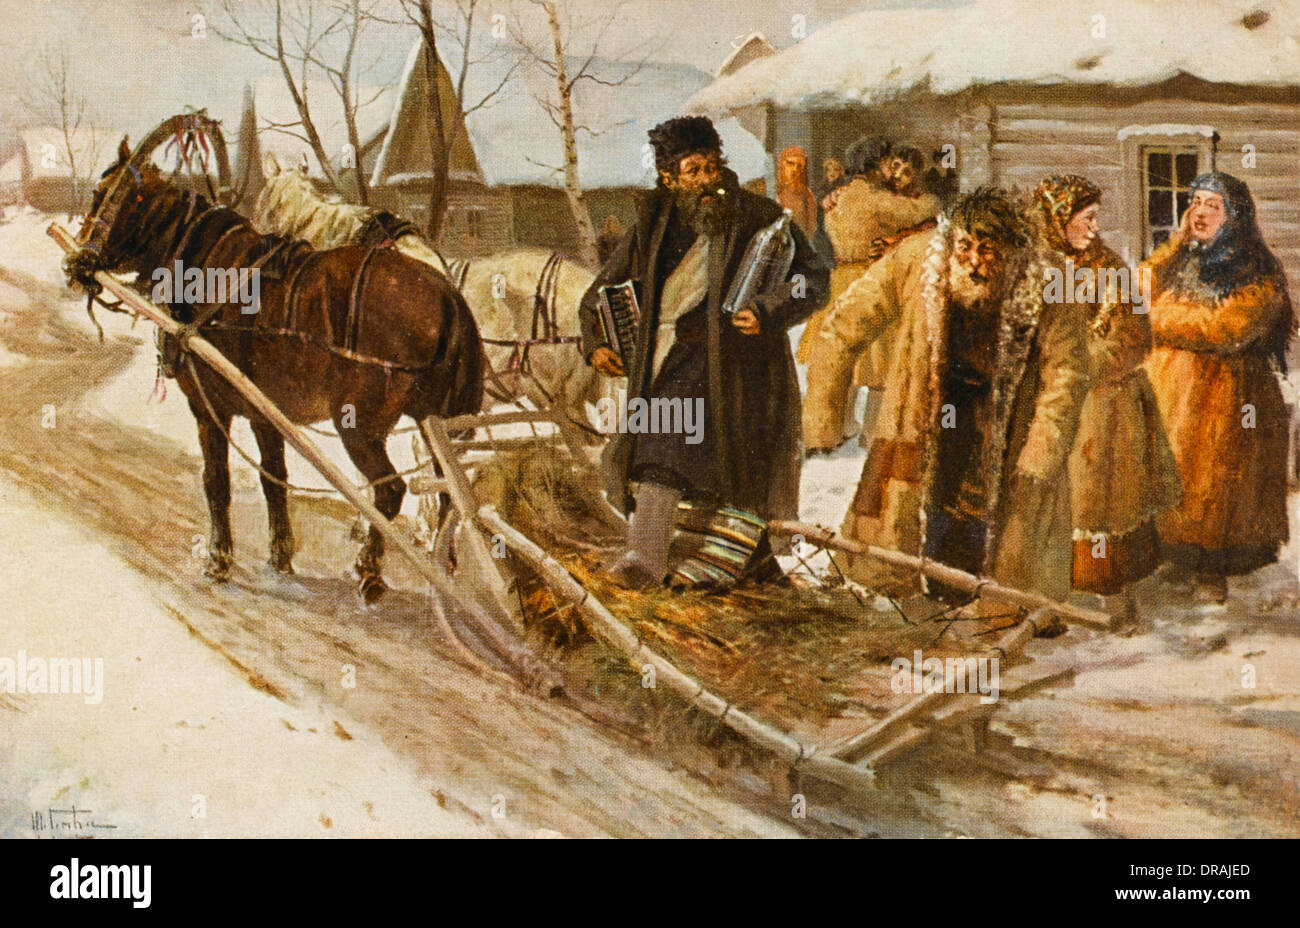 Russian peasants going to a drinking bout - Stock Image